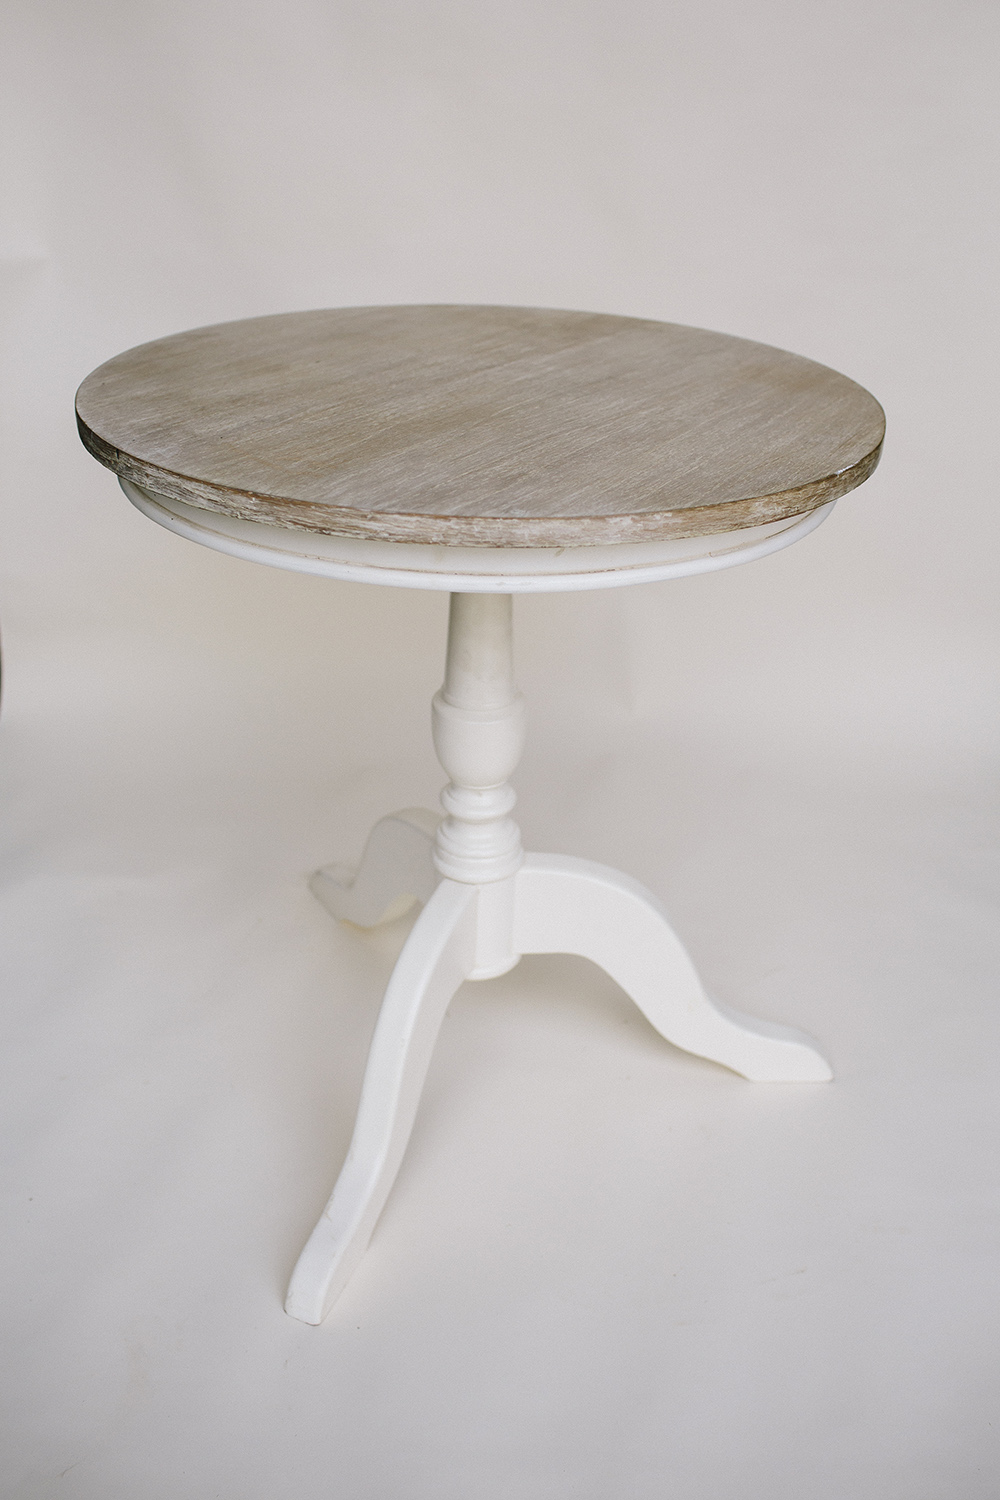 Limewash Registry Table / $45